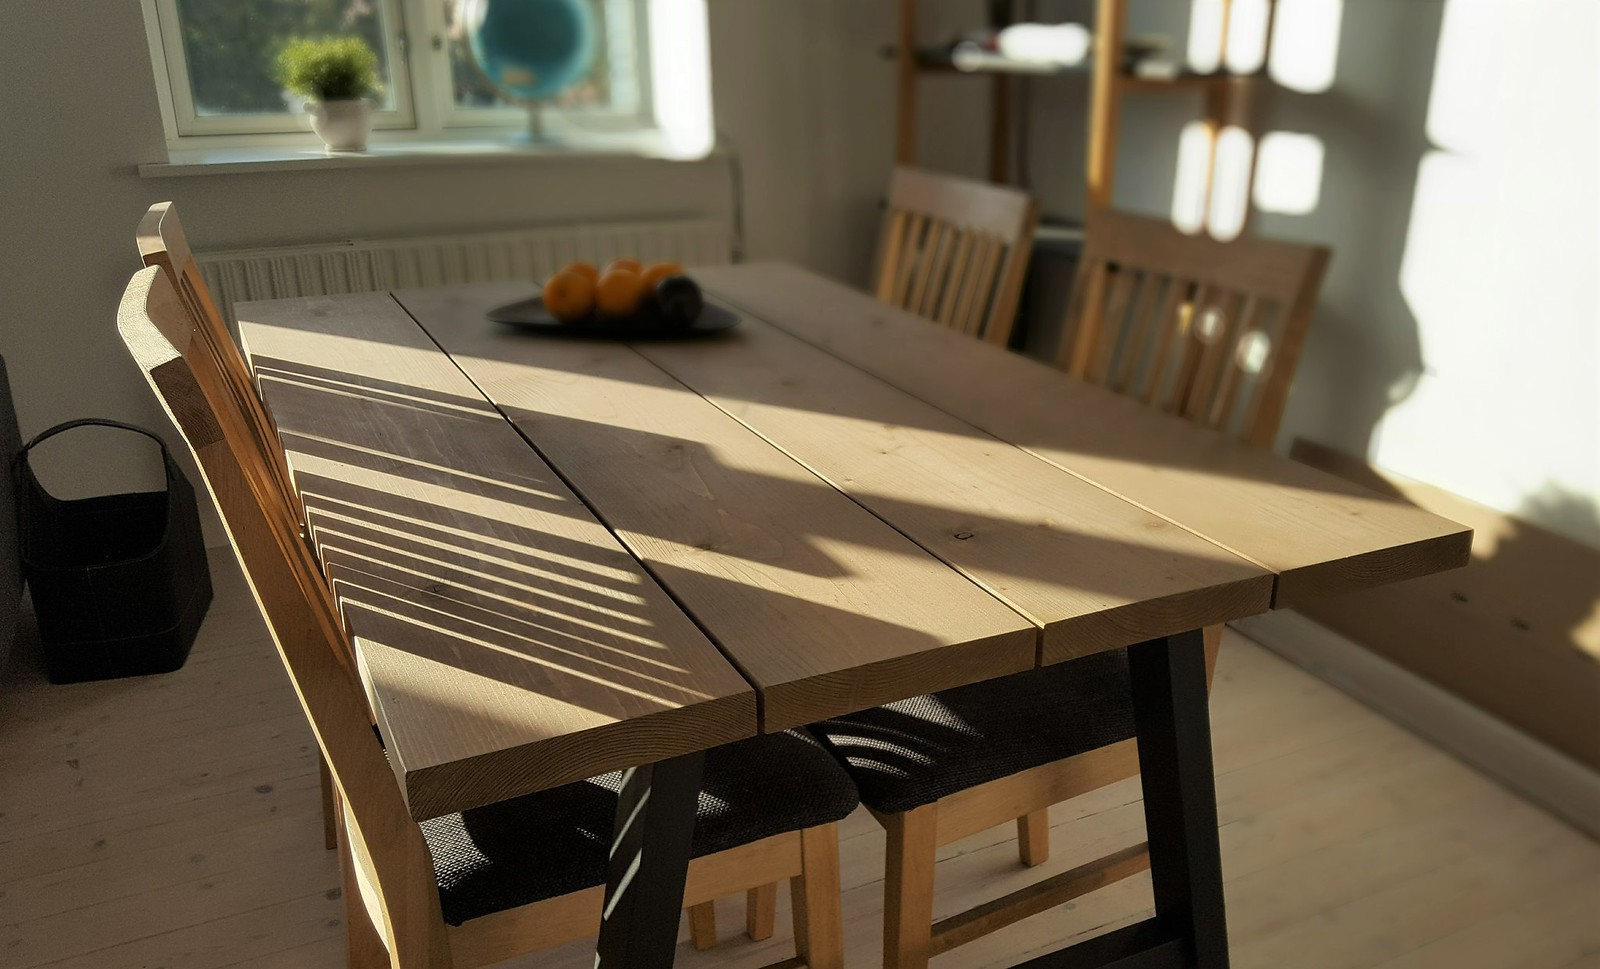 Guide: Make a Nordic Wood Dining Table